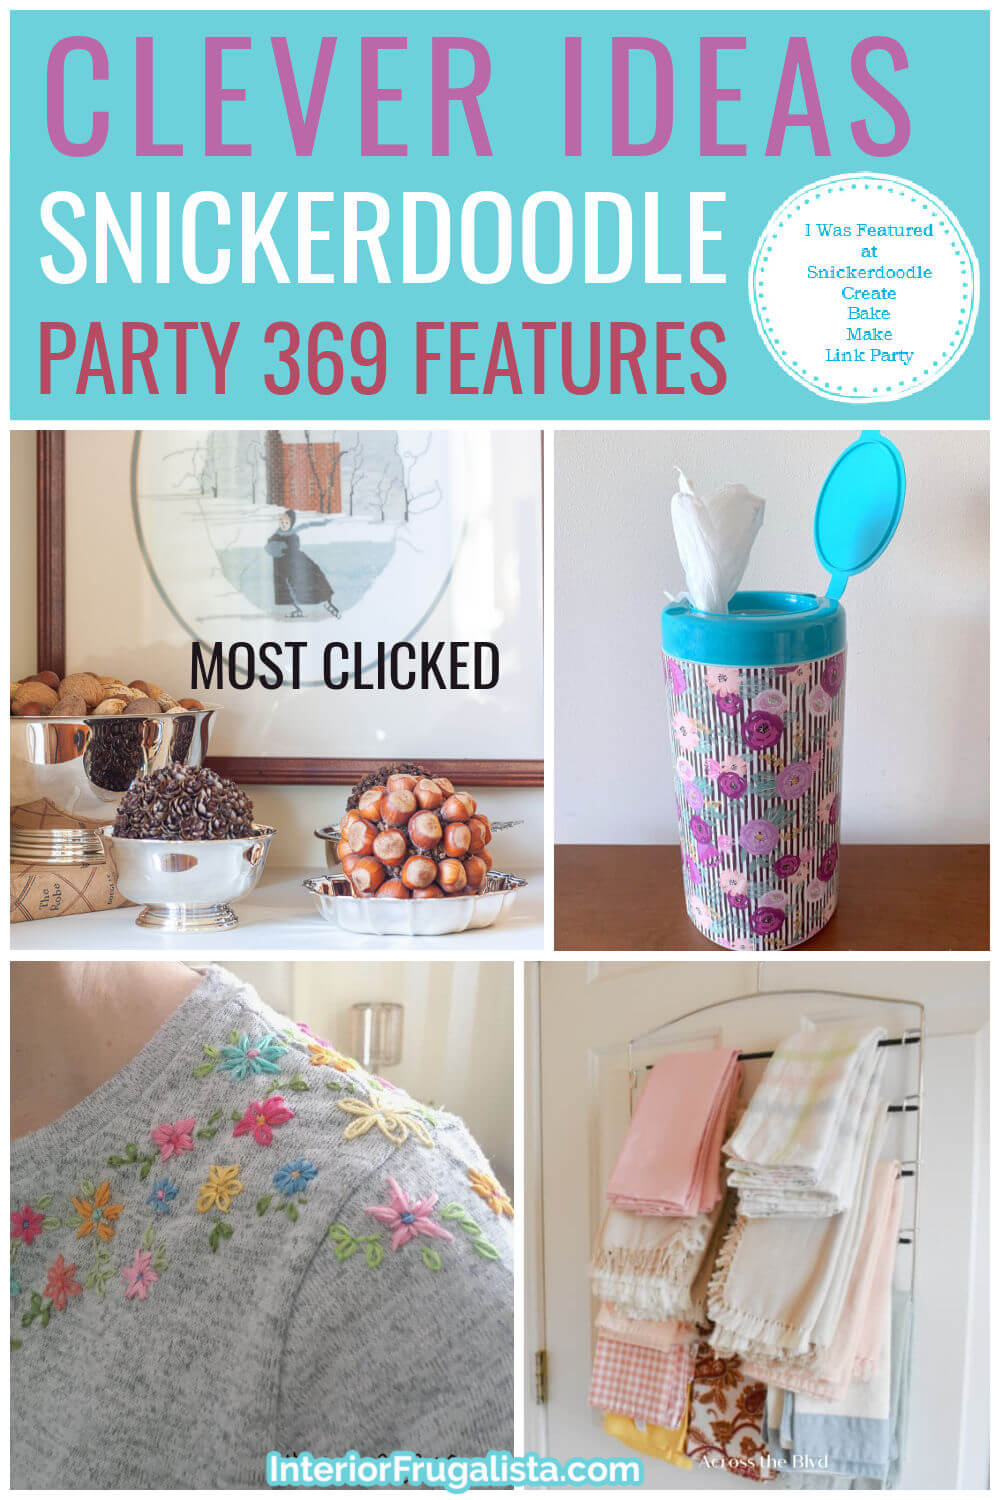 Clever Ideas - Snickerdoodle Create Bake Make Link Party 369 Features co-hosted by Interior Frugalista #linkparty #linkpartyfeatures #snickerdoodleparty